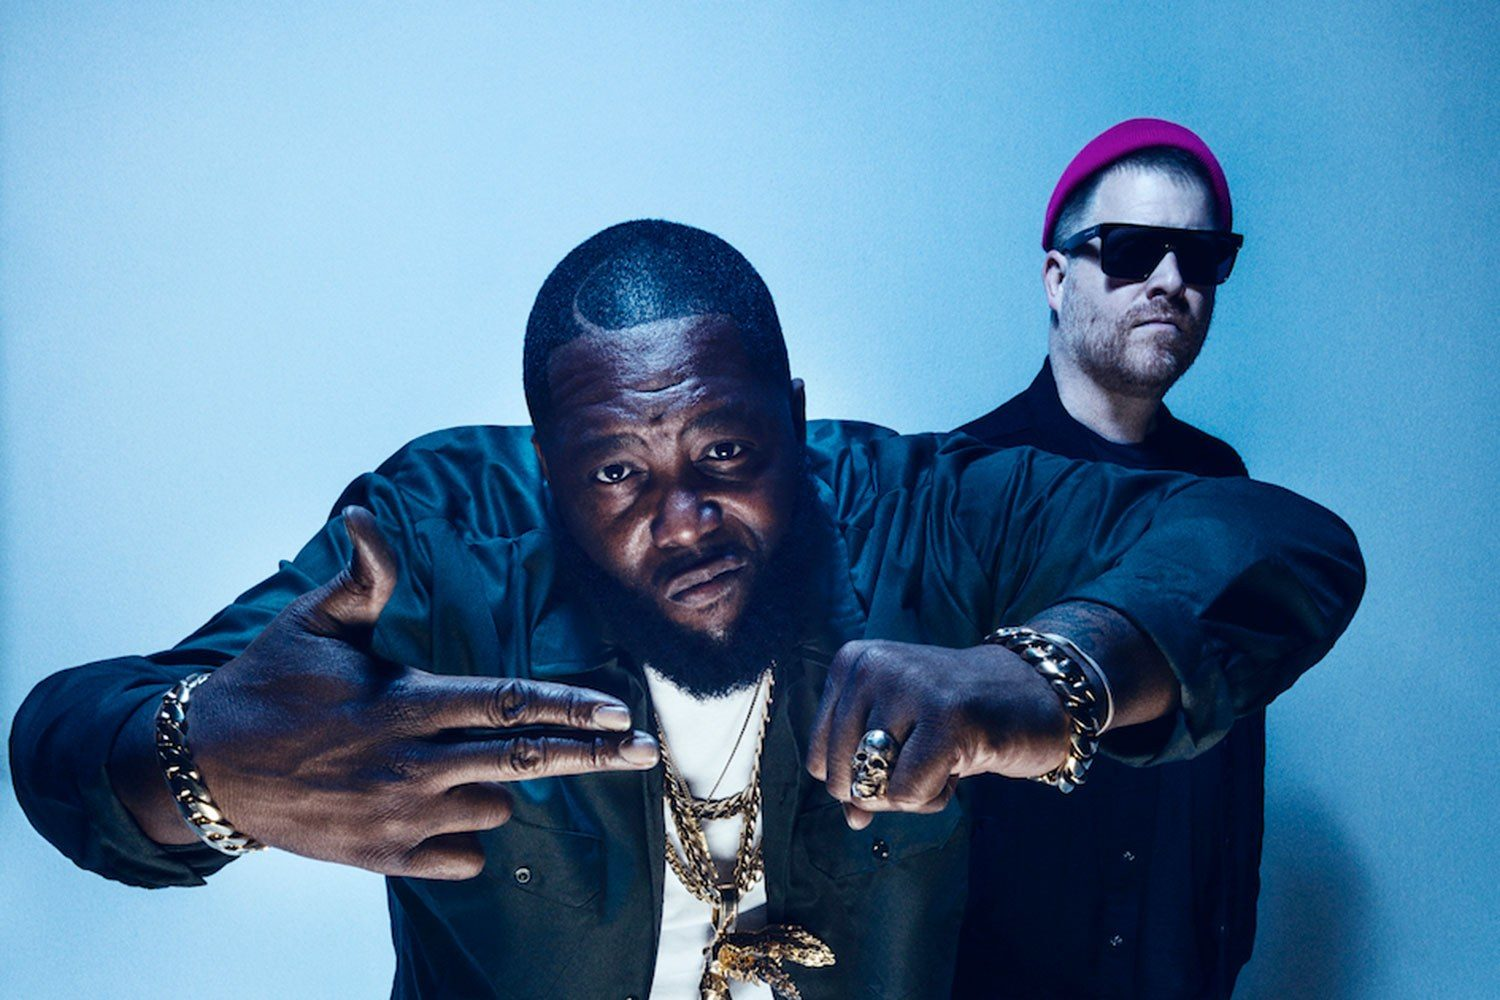 Run The Jewels have released a lyric video for their Pharrell Williams and Zack de la Rocha collab, 'JU$T'